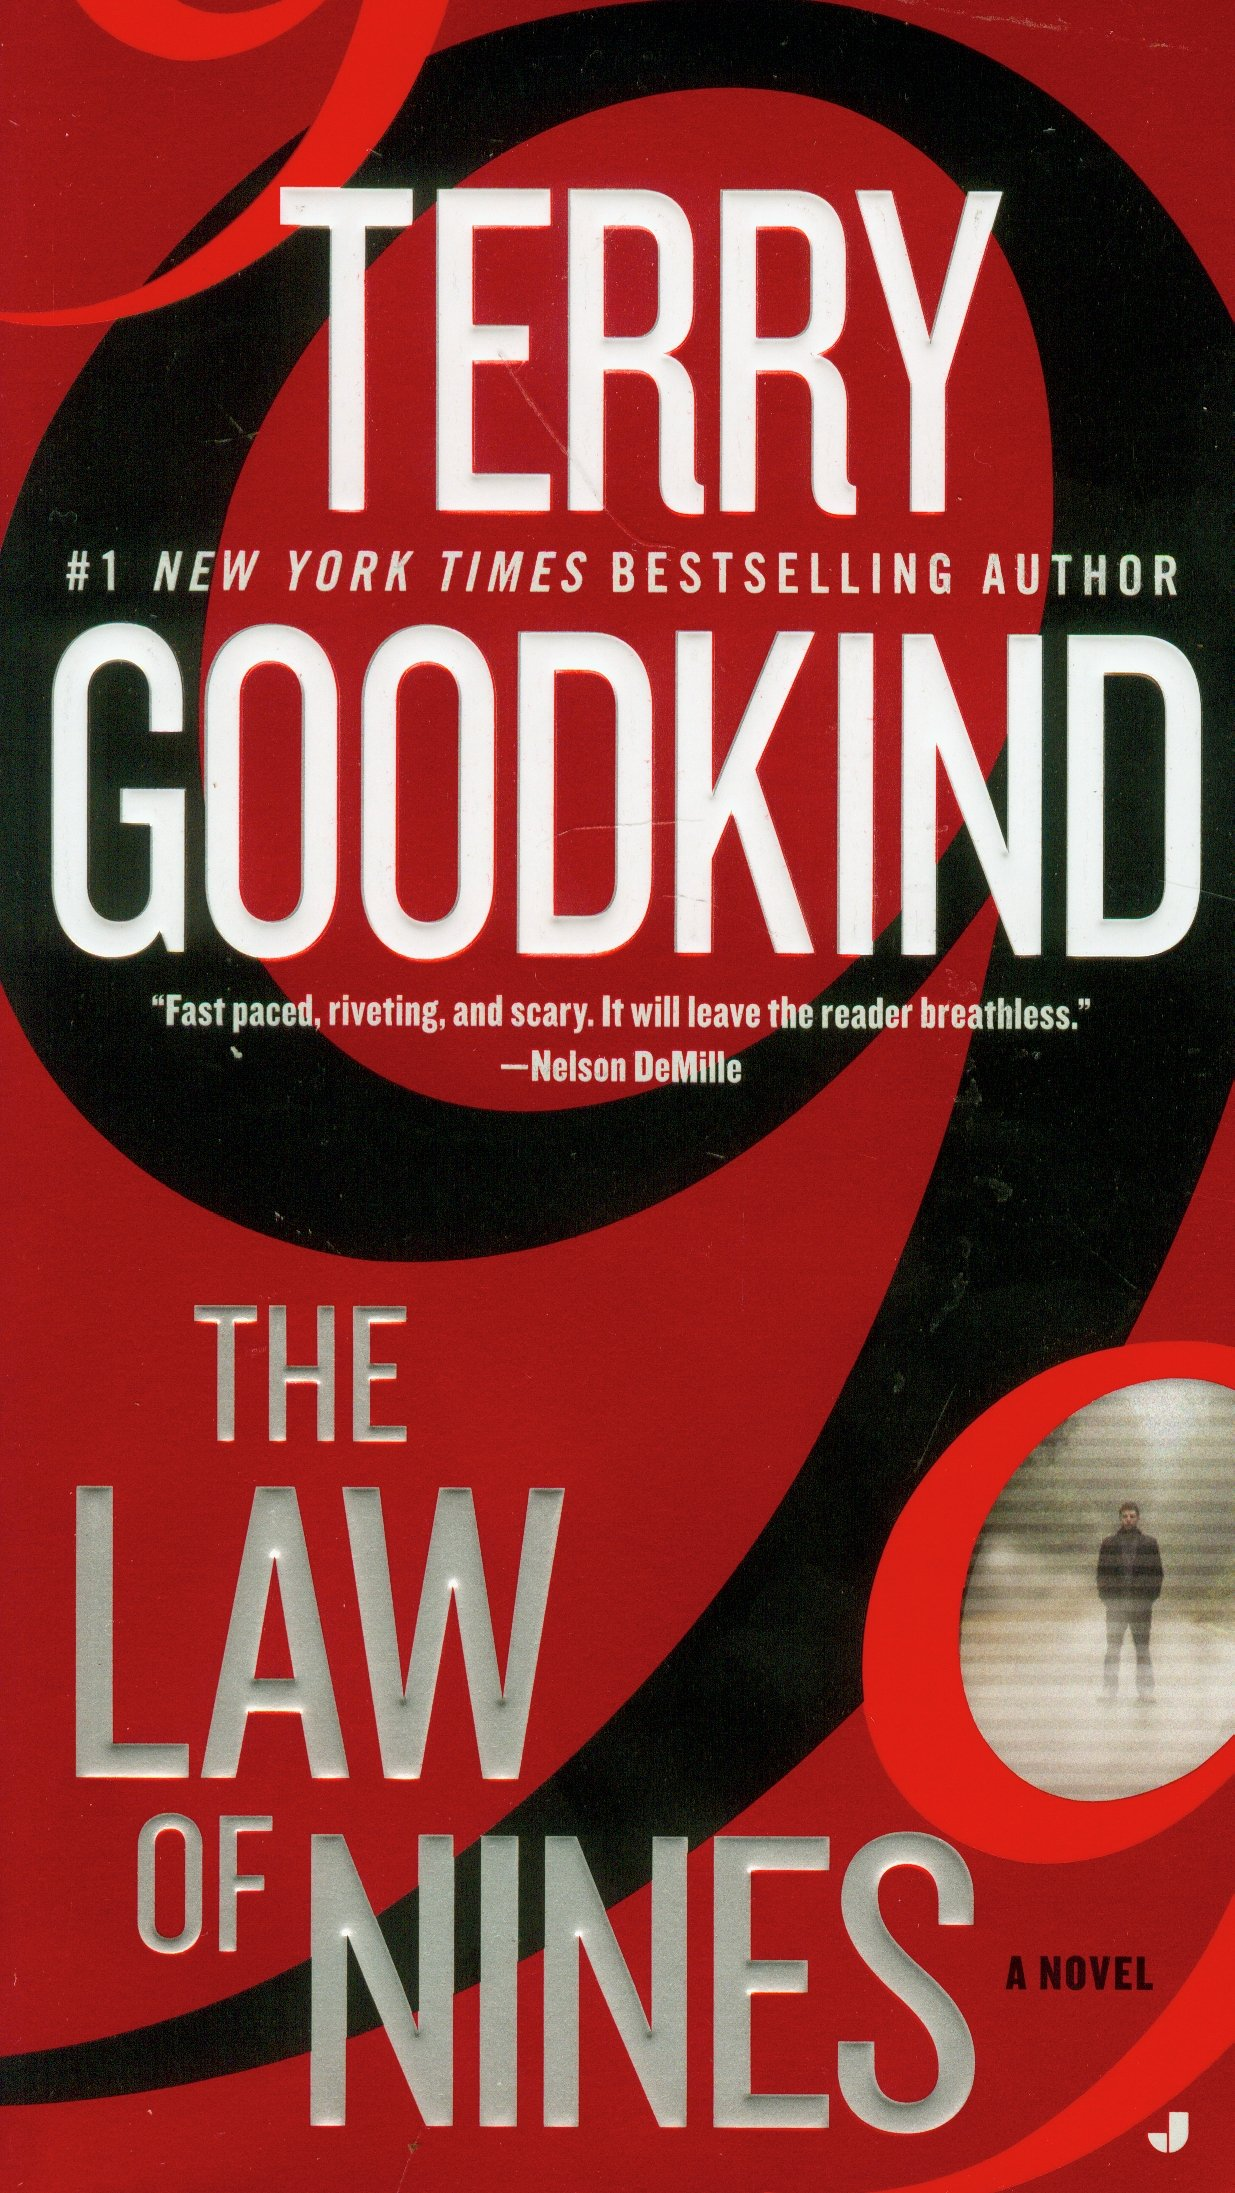 TERRY GOODKIND LAW OF NINES EBOOK DOWNLOAD